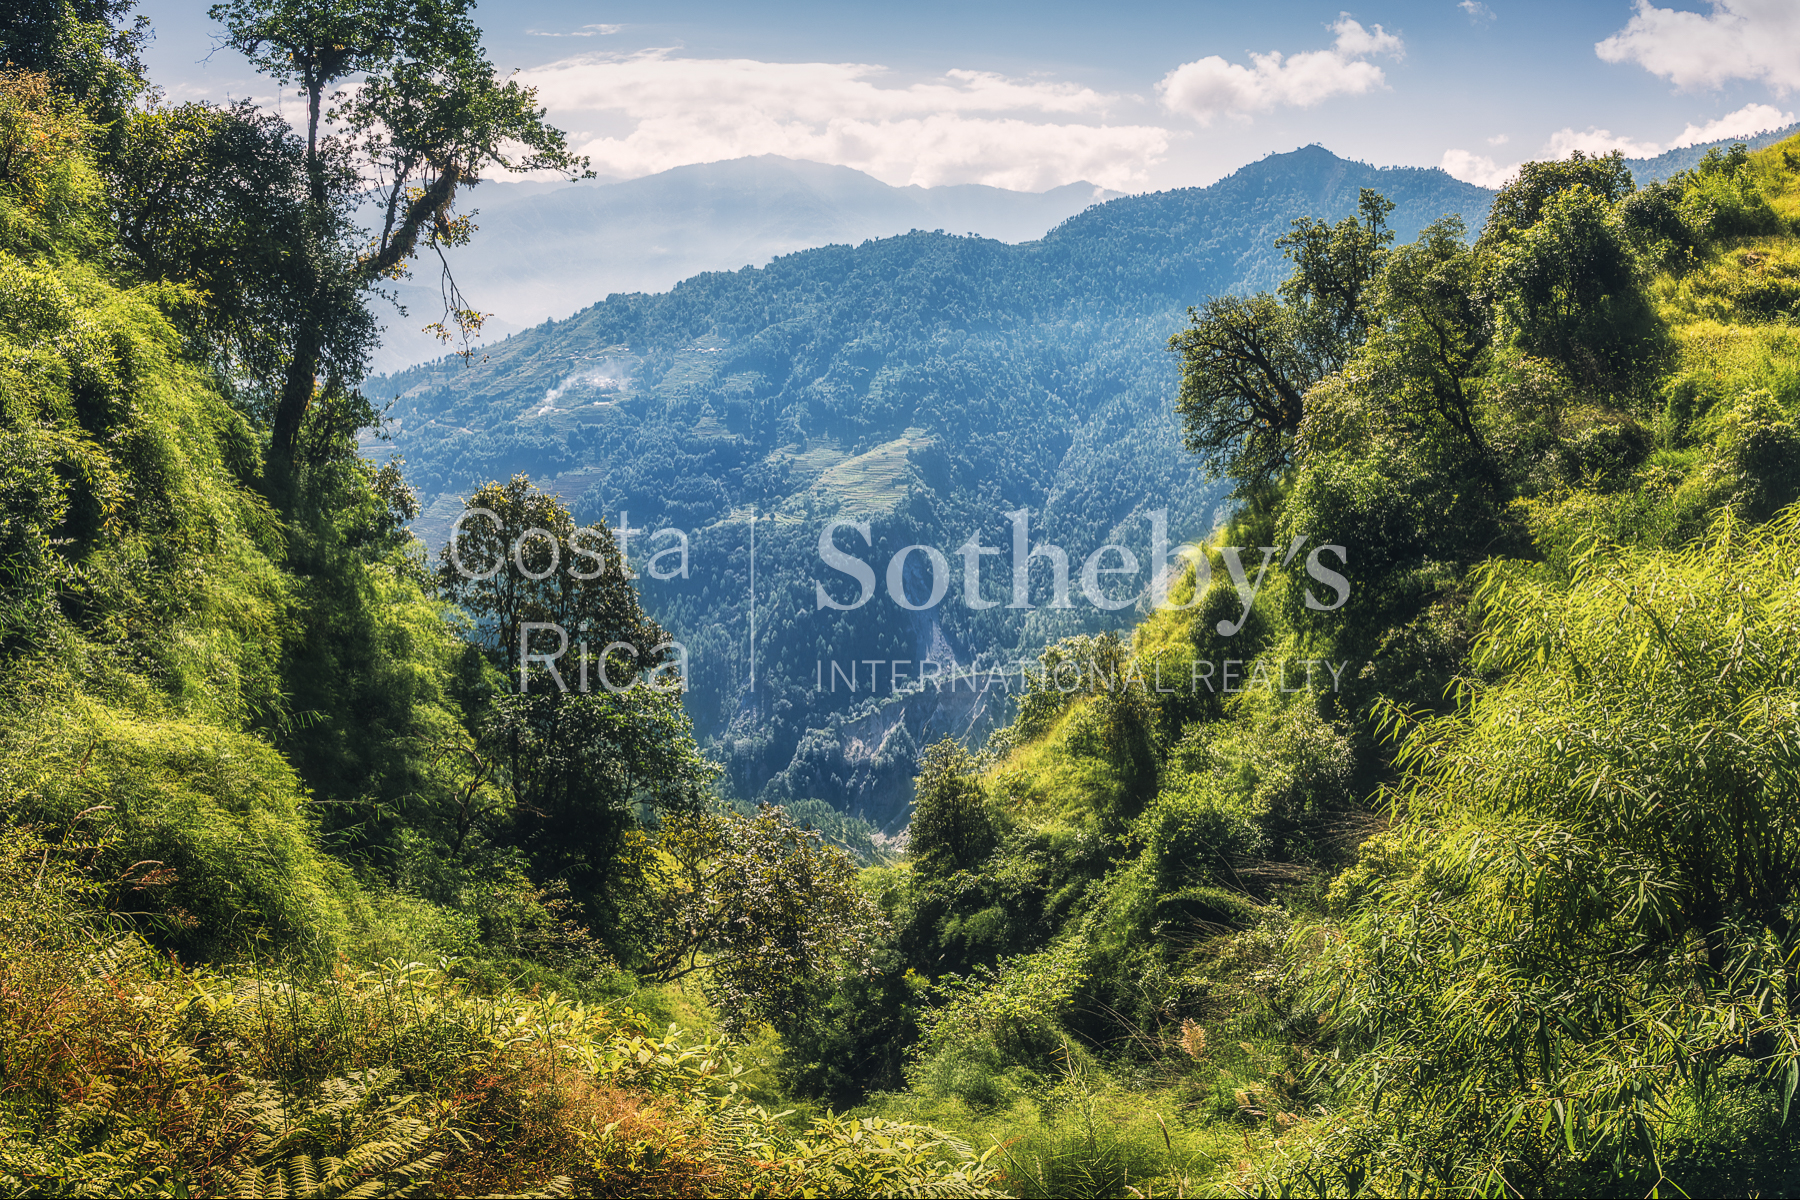 2,500 Acre Conservation Land With Precious Woods